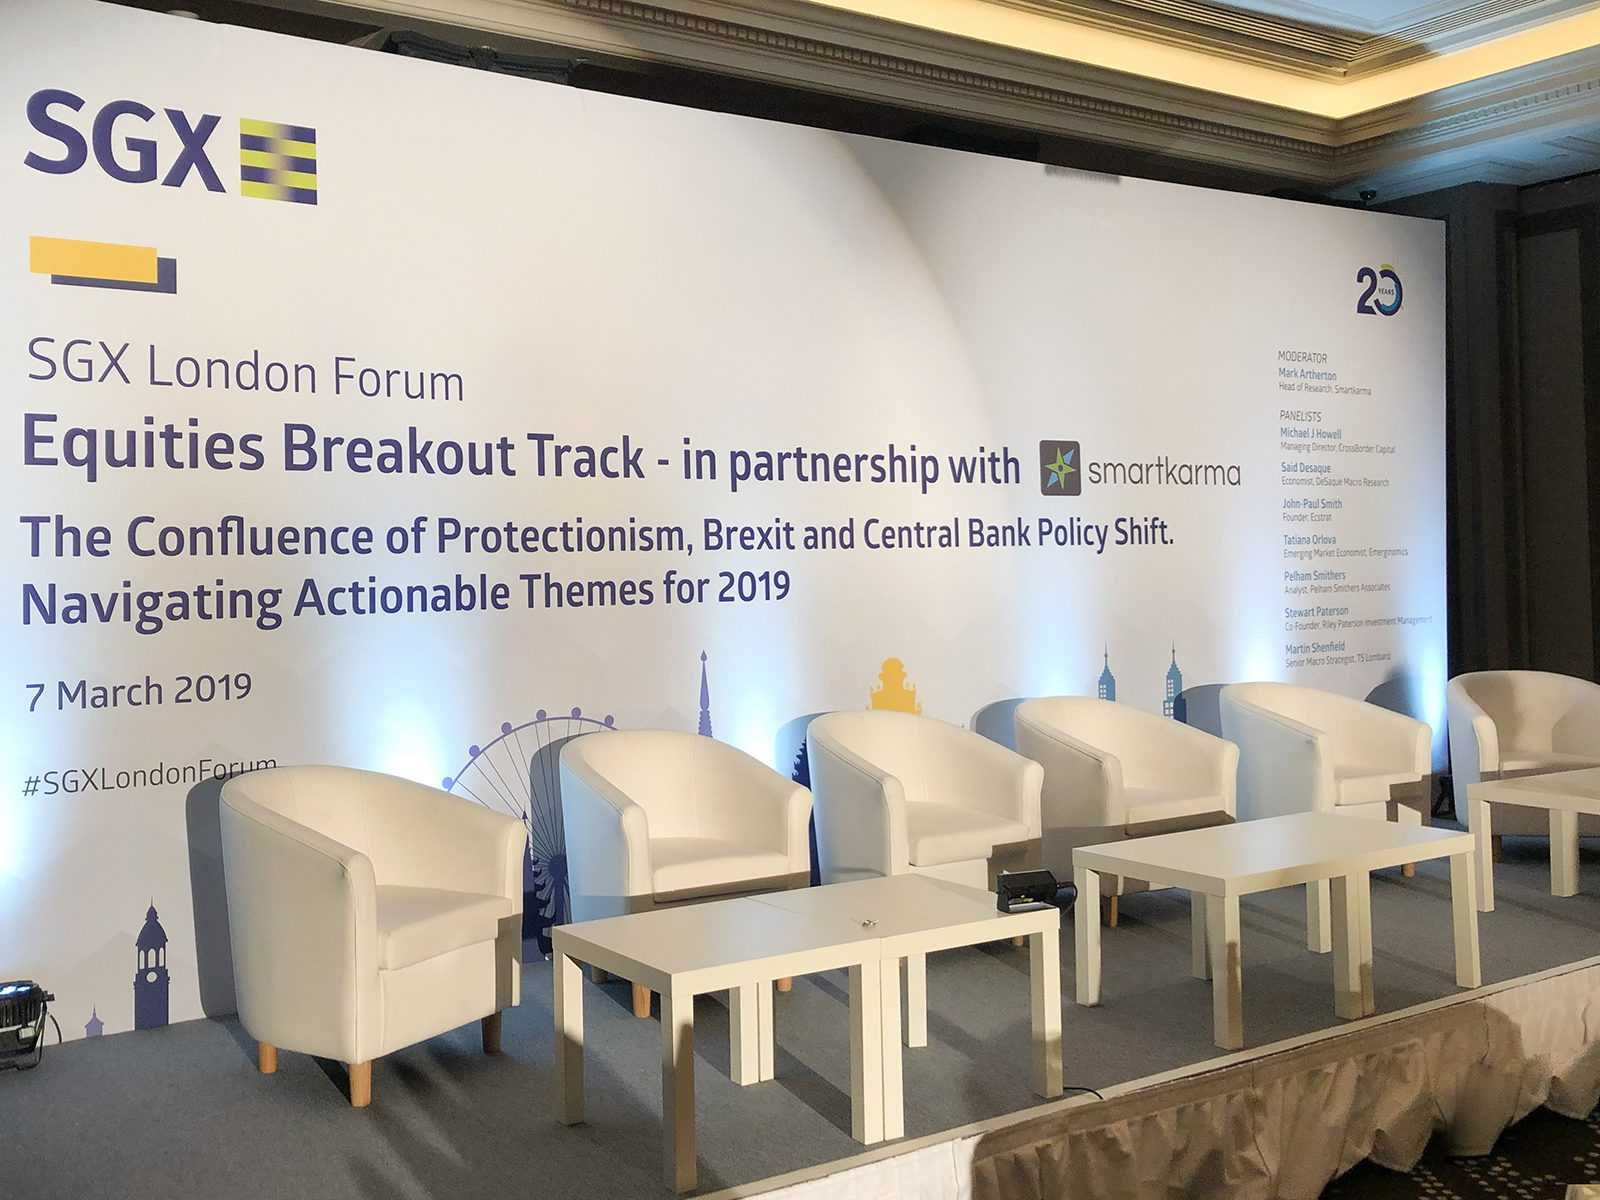 SGX Conference 2019 London